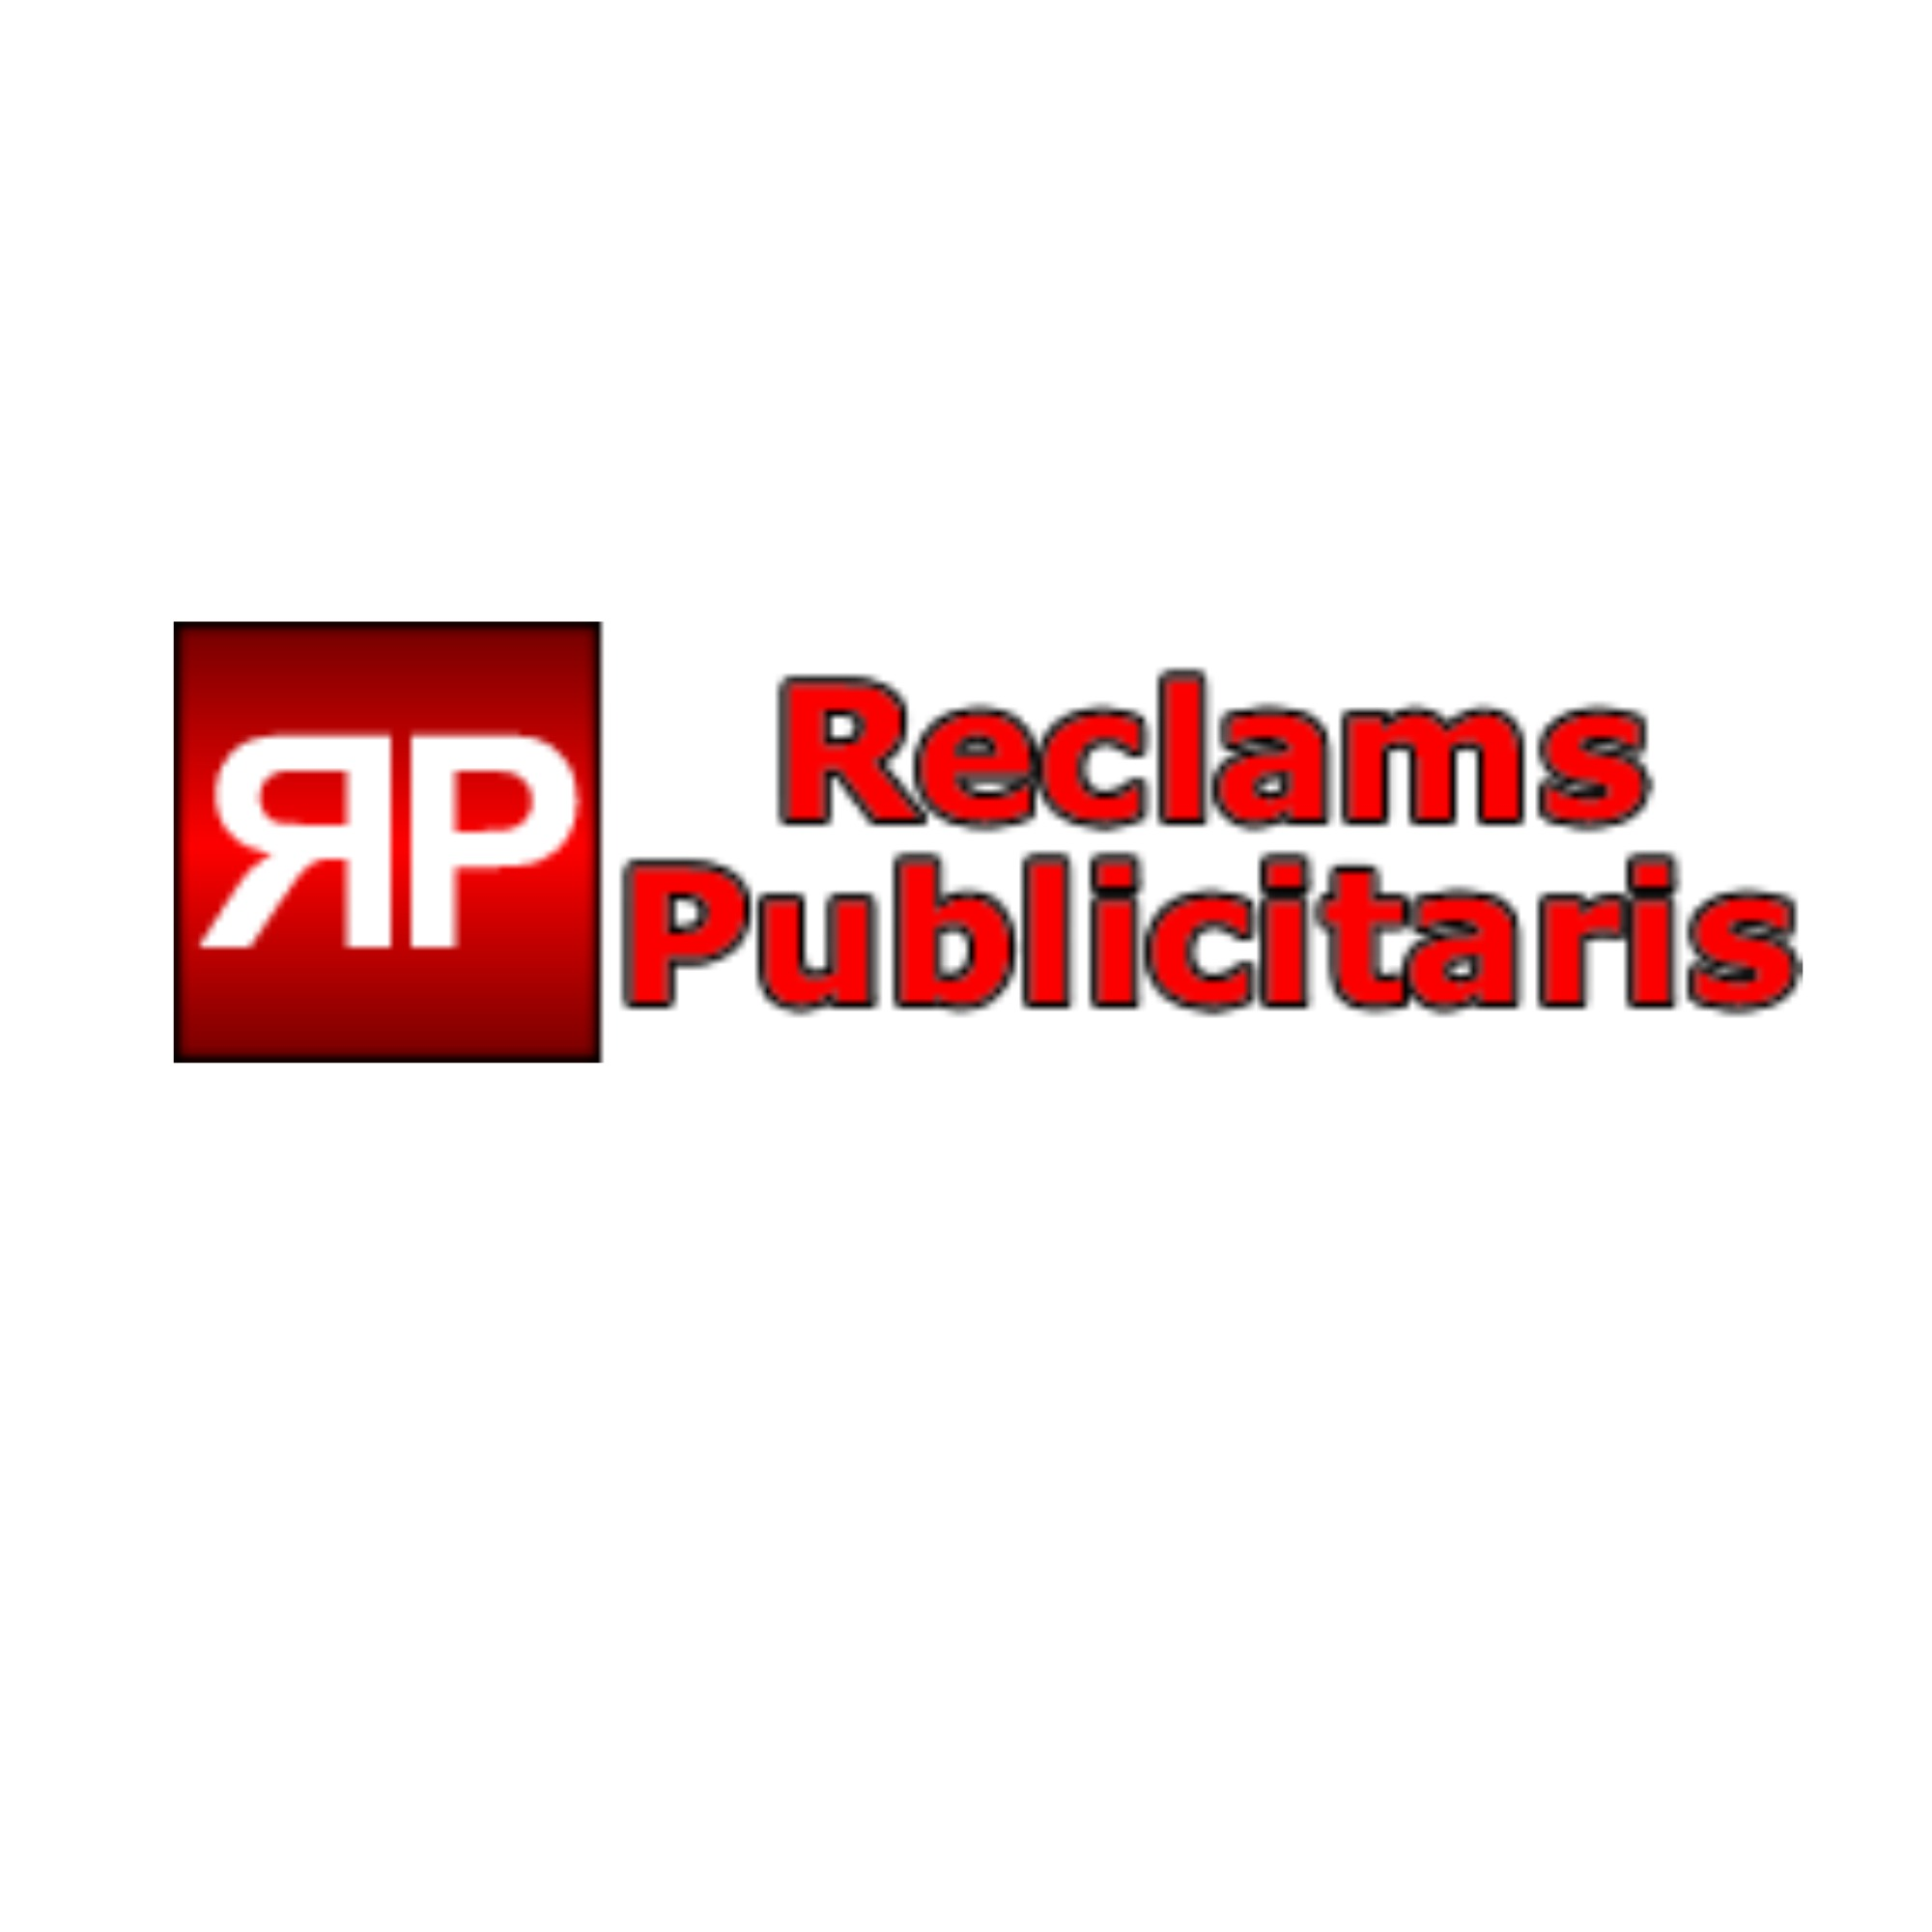 Reclams Publicitaris